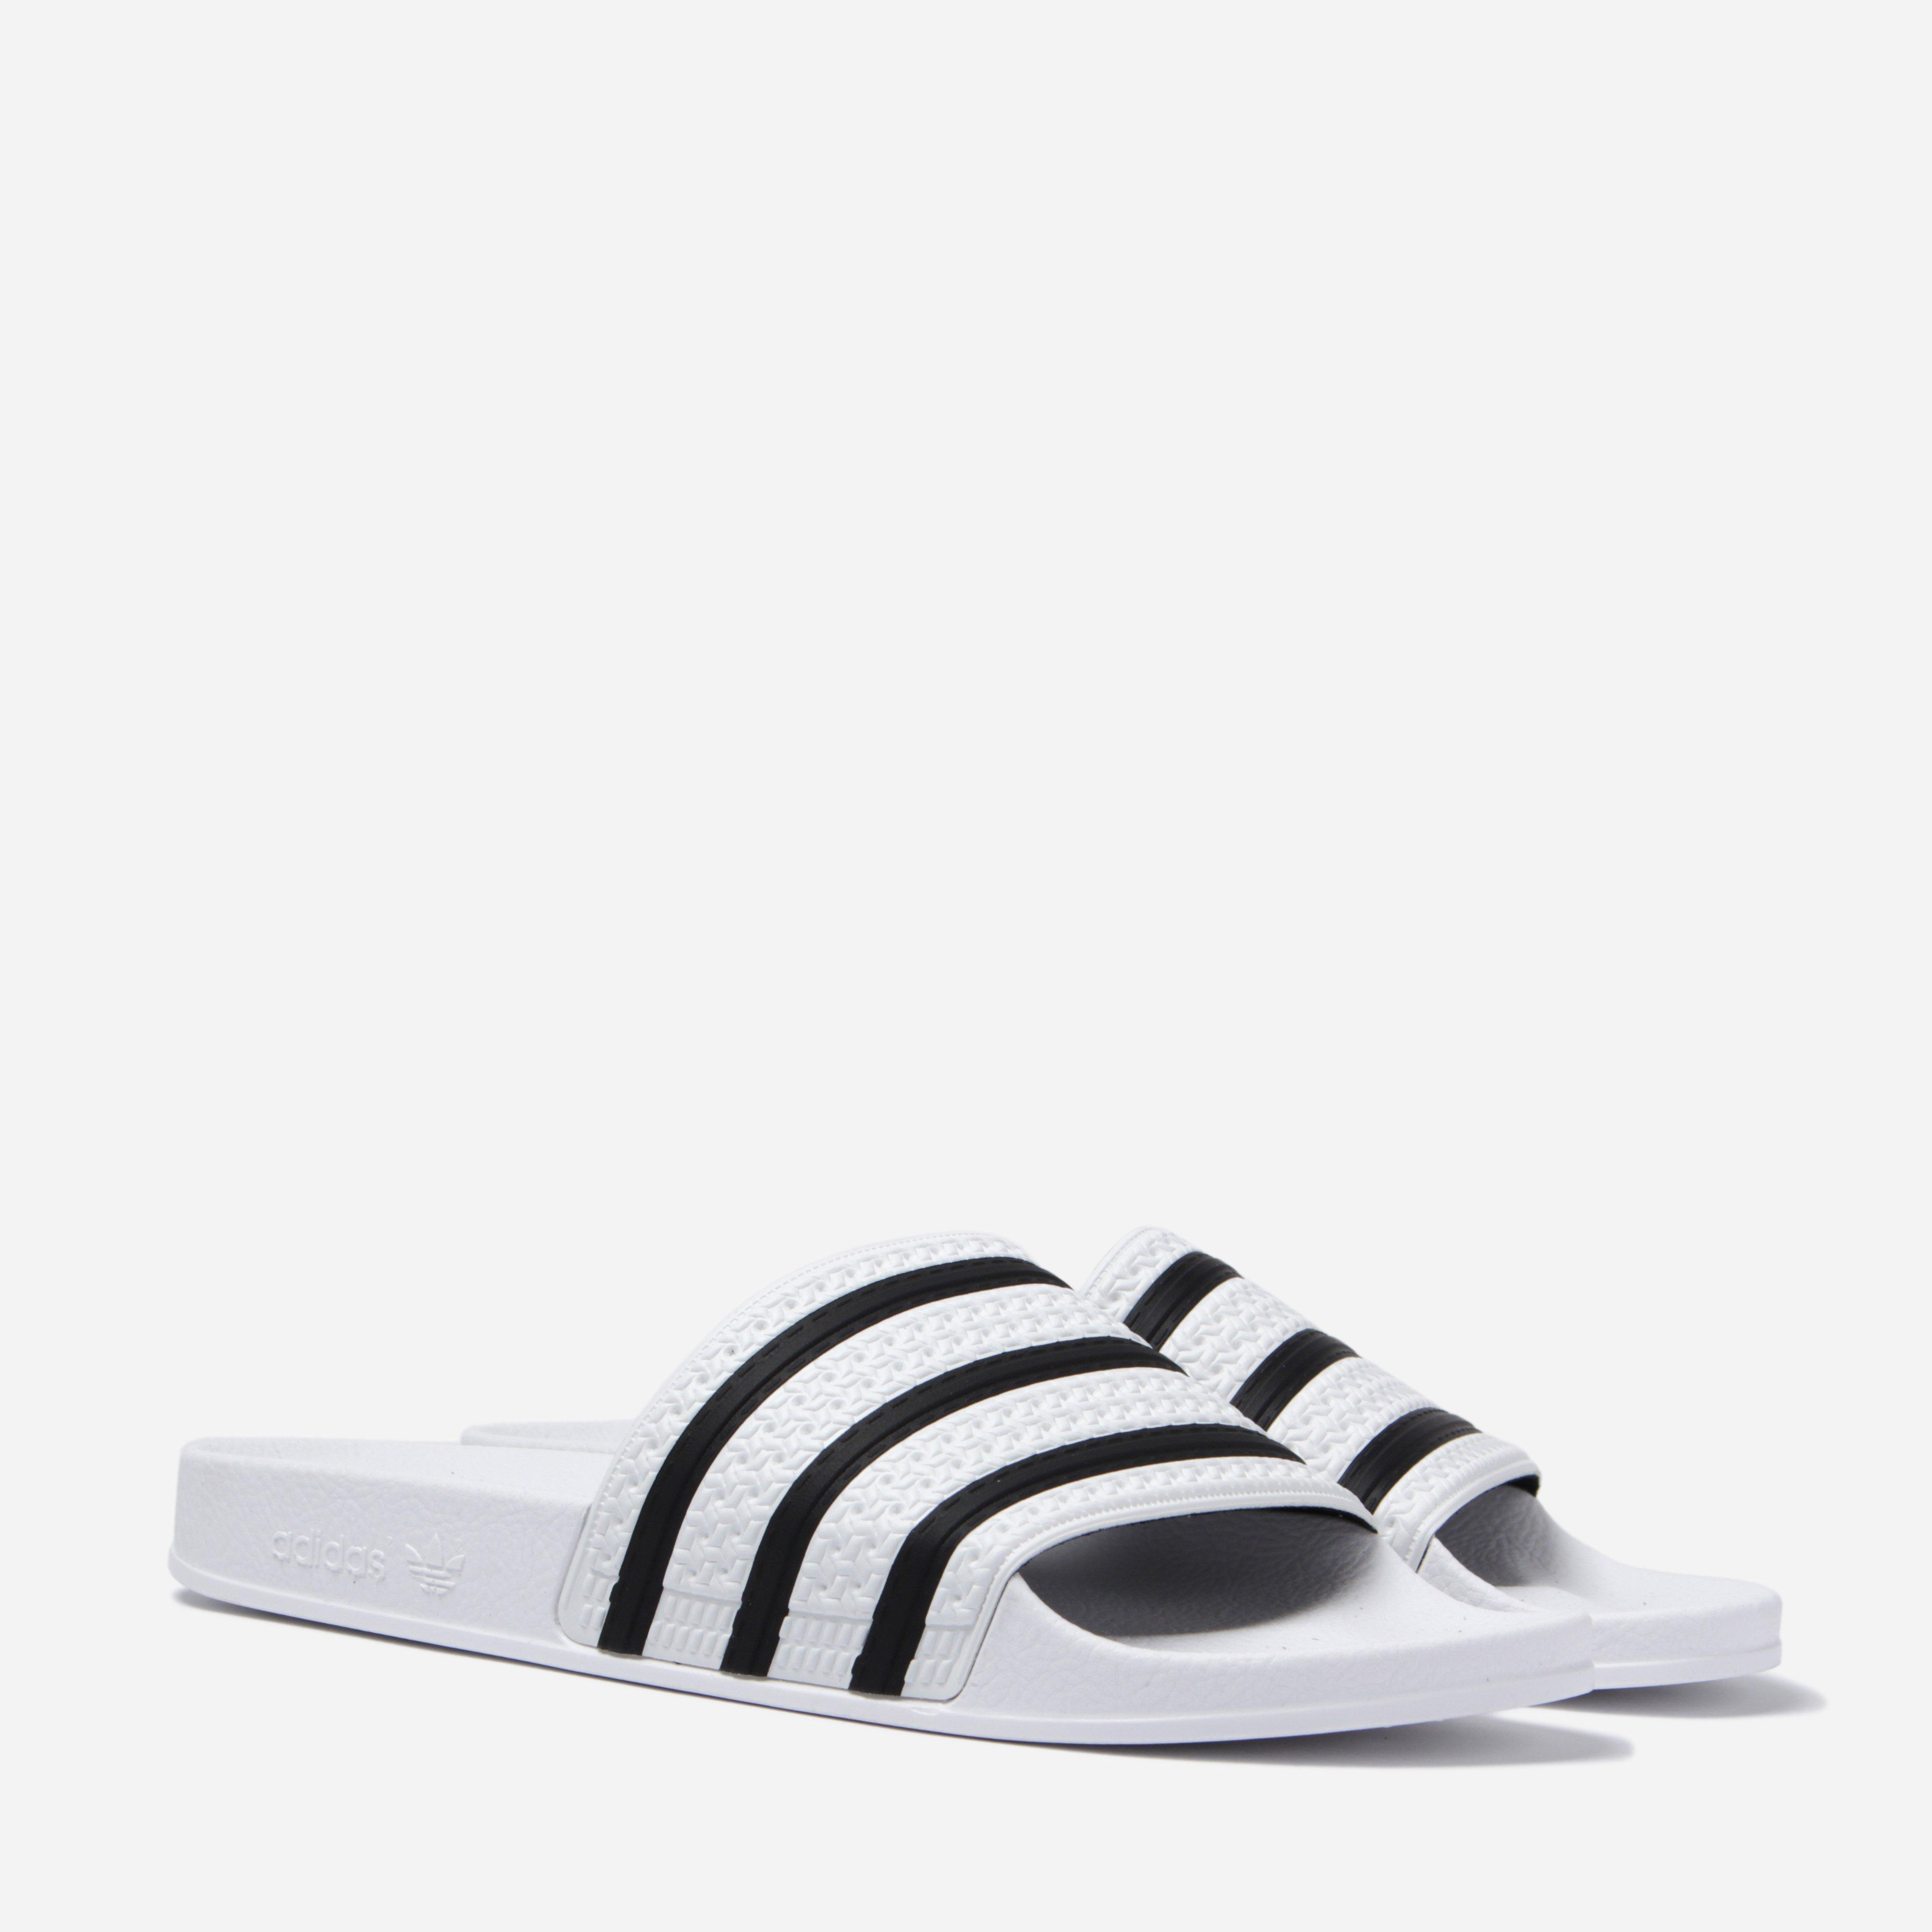 6d5dc66ca8c1 Lyst - adidas Originals 280648 Adilette Slides in White for Men